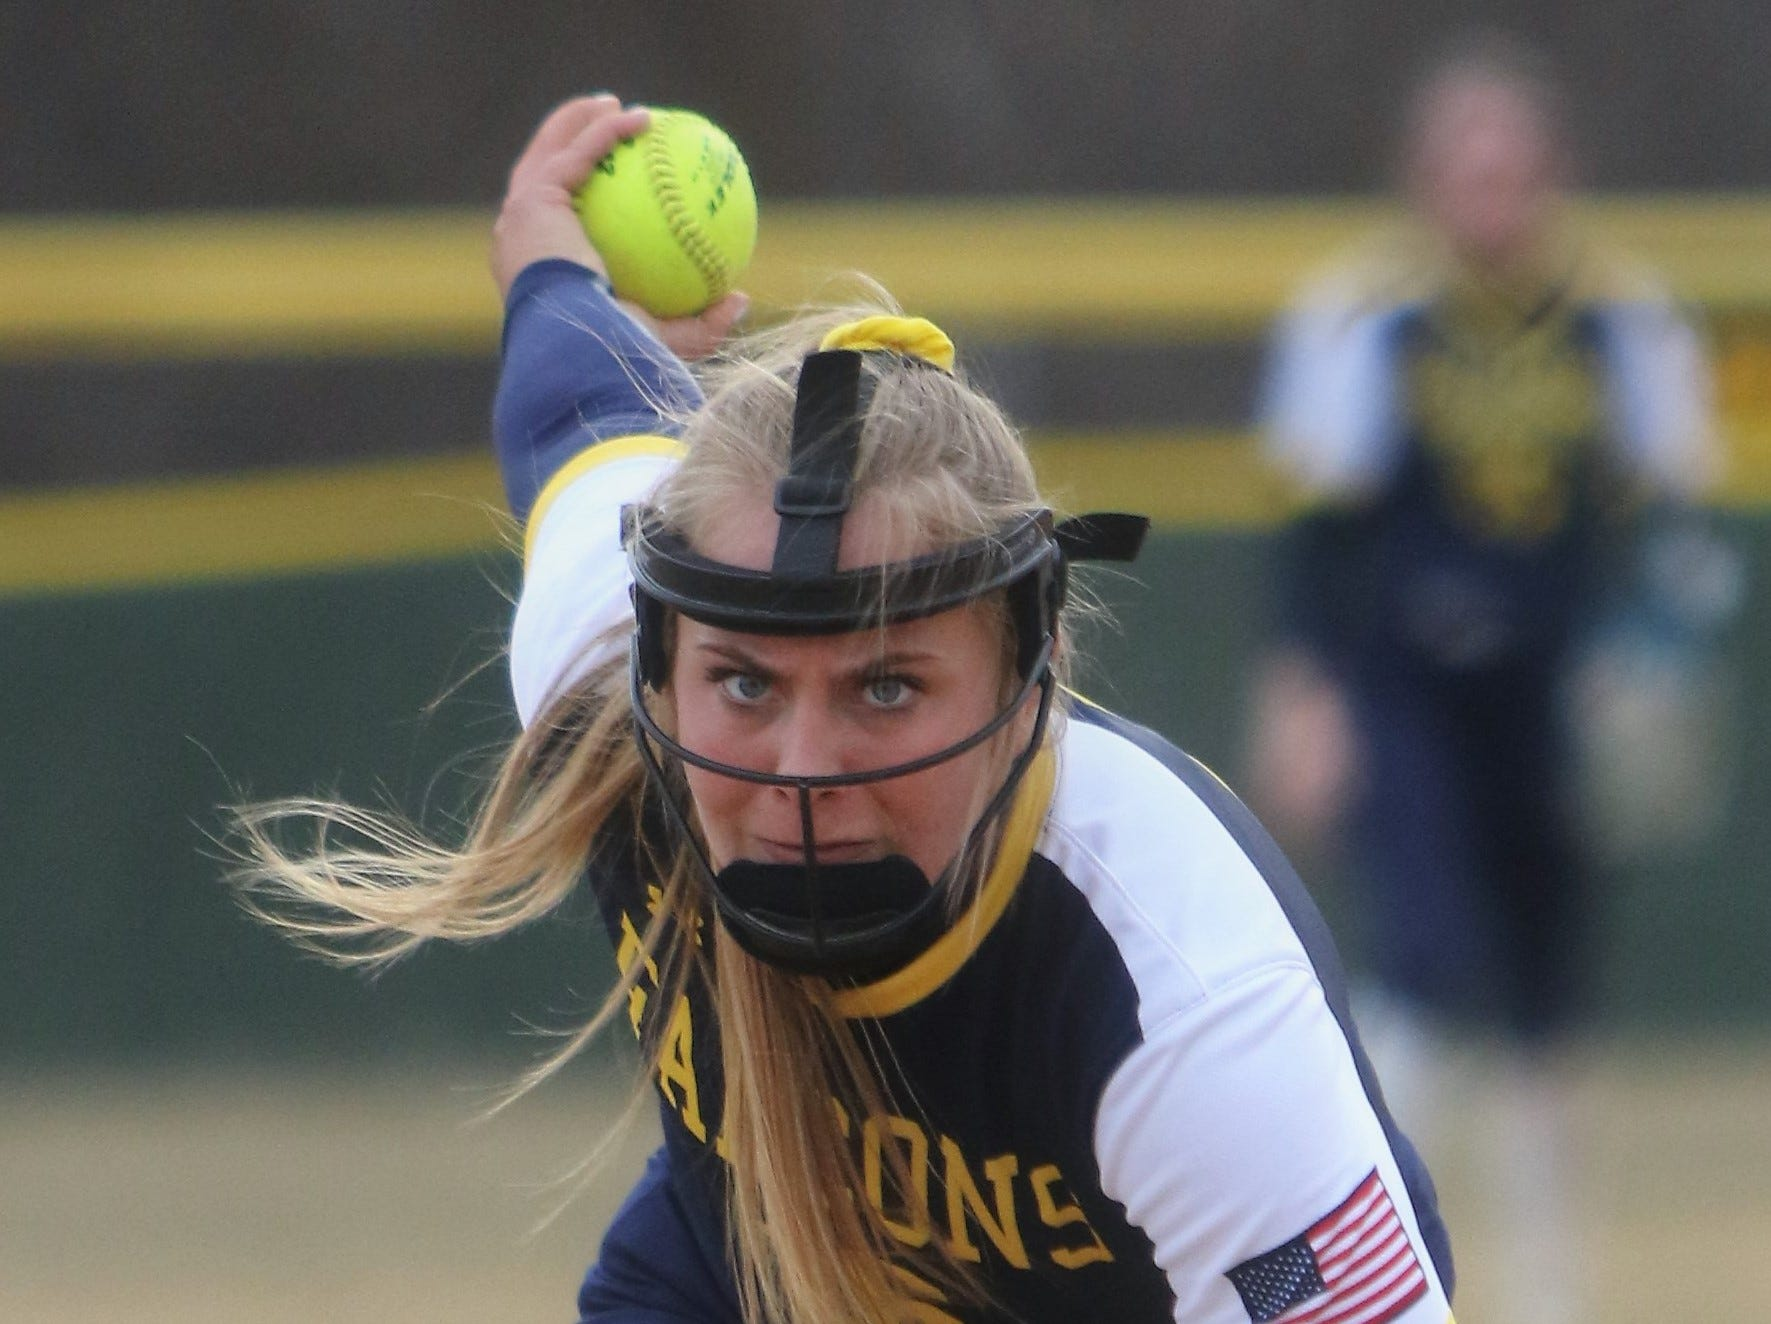 Whitnall pitcher Haley Wynn glares into home plate prior to throwing a pitch against Greenfield on April 3, 2019.